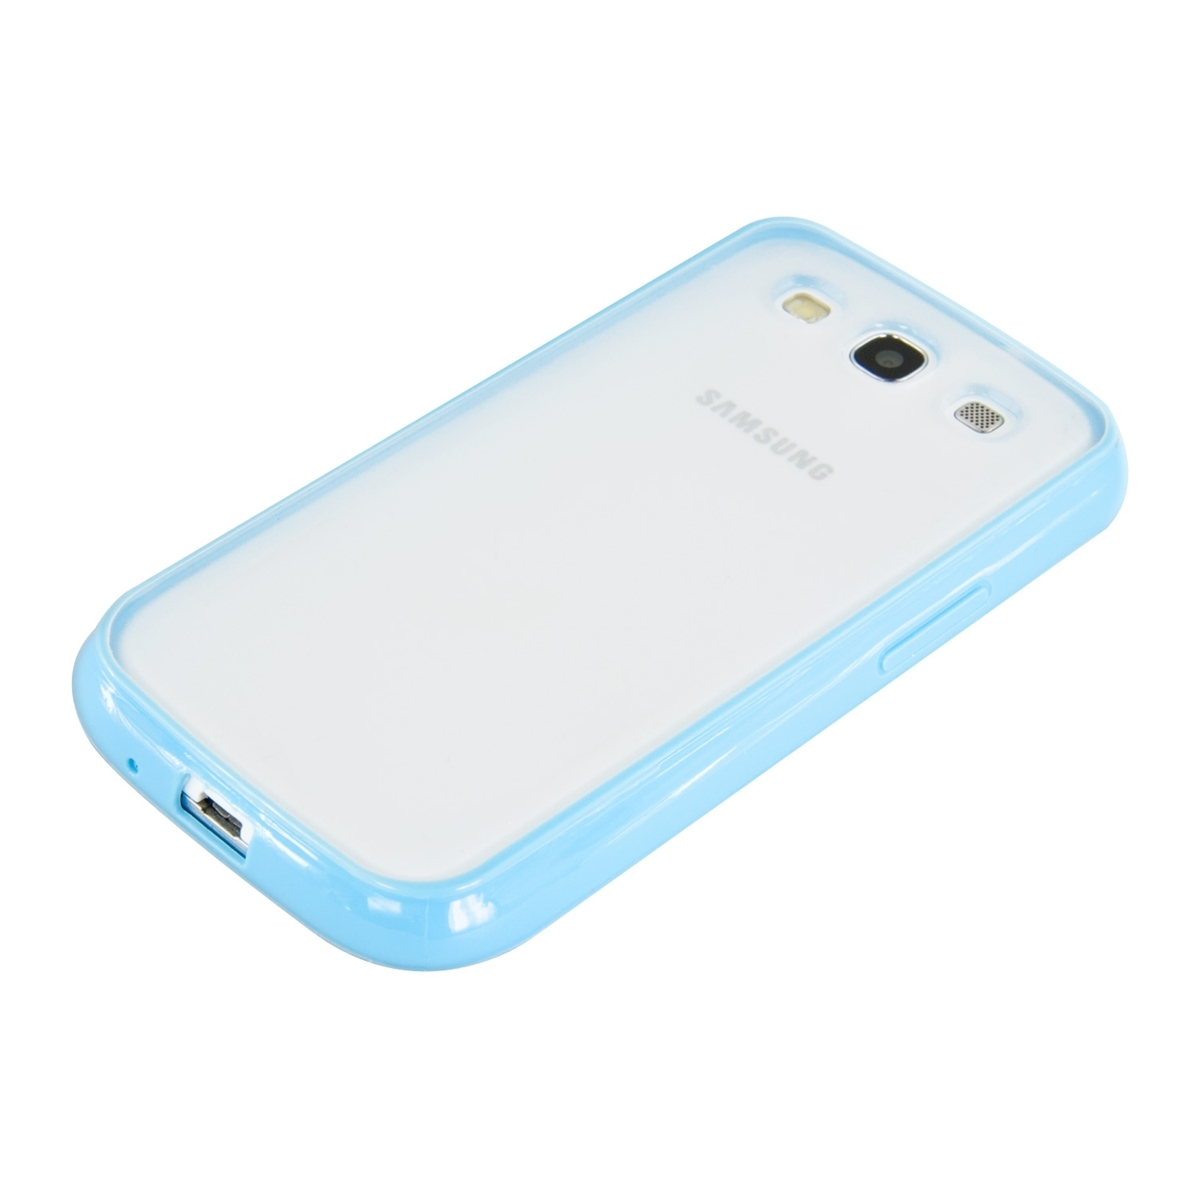 kwmobile-TPU-SILICONE-CRYSTAL-CASE-FOR-SAMSUNG-GALAXY-S3-I9300-S3-NEO-I9301